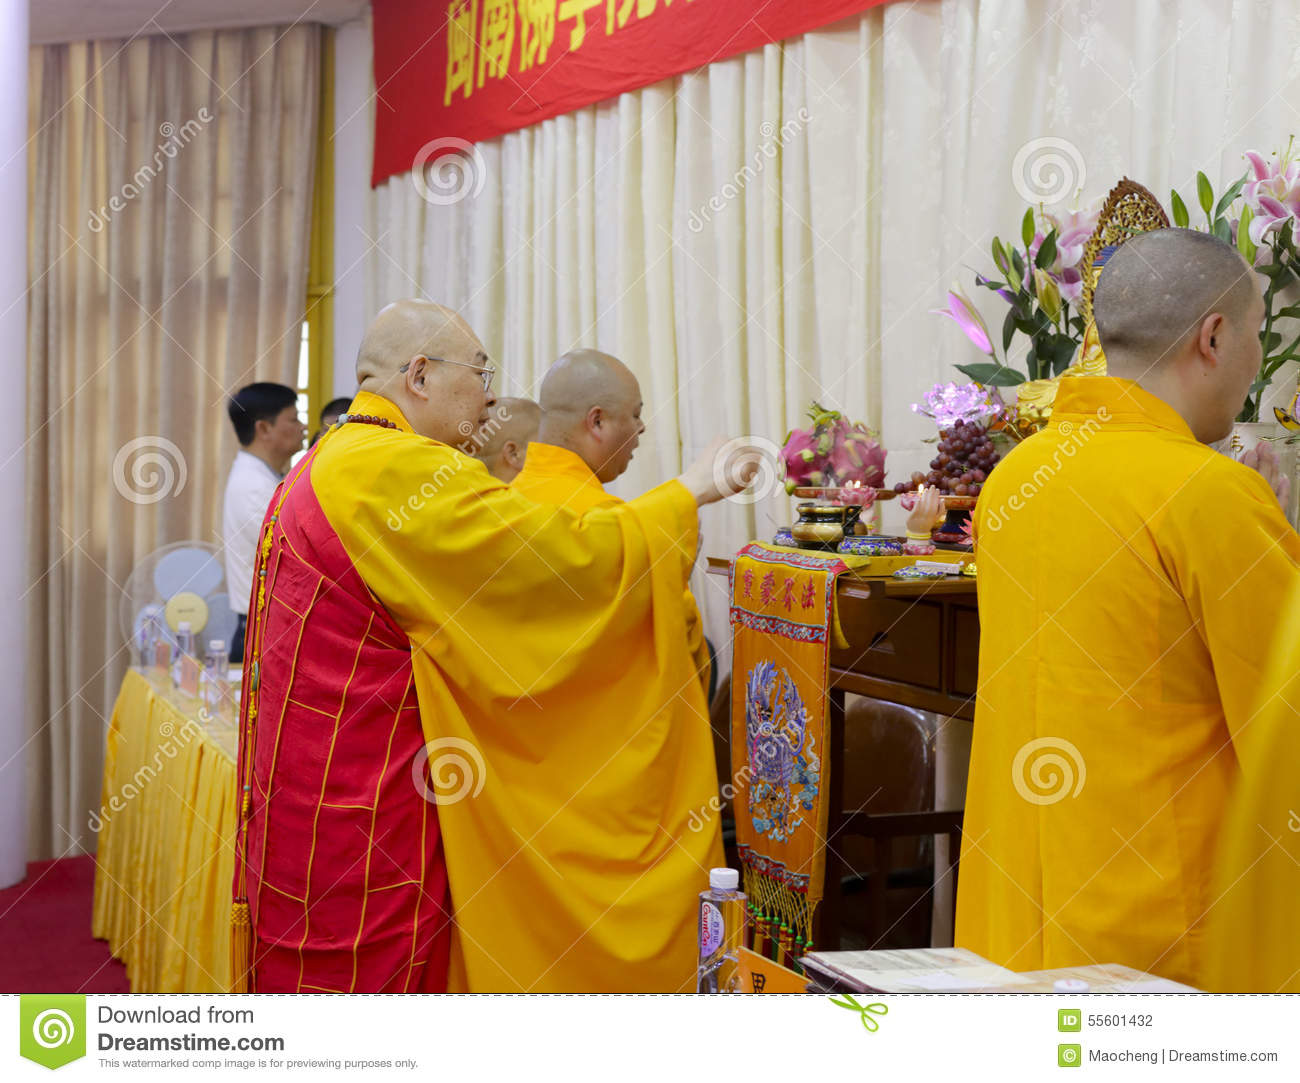 college city buddhist singles Discover buddhist friends date, the completely free site for single buddhists and those looking to meet local buddhists never pay anything, meet buddhists.